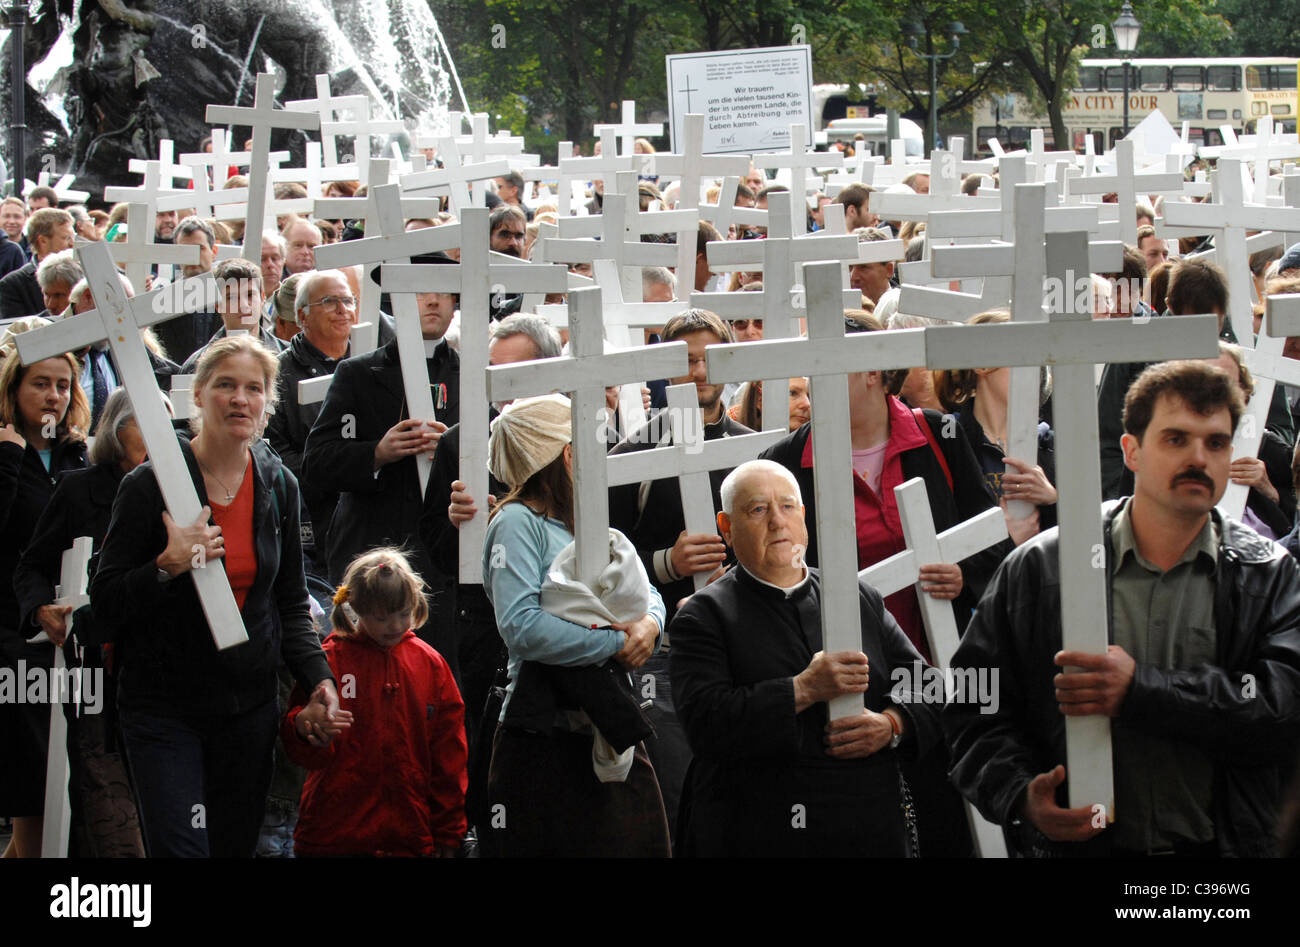 Anti-abortion protest in a silent march, Berlin, Germany - Stock Image